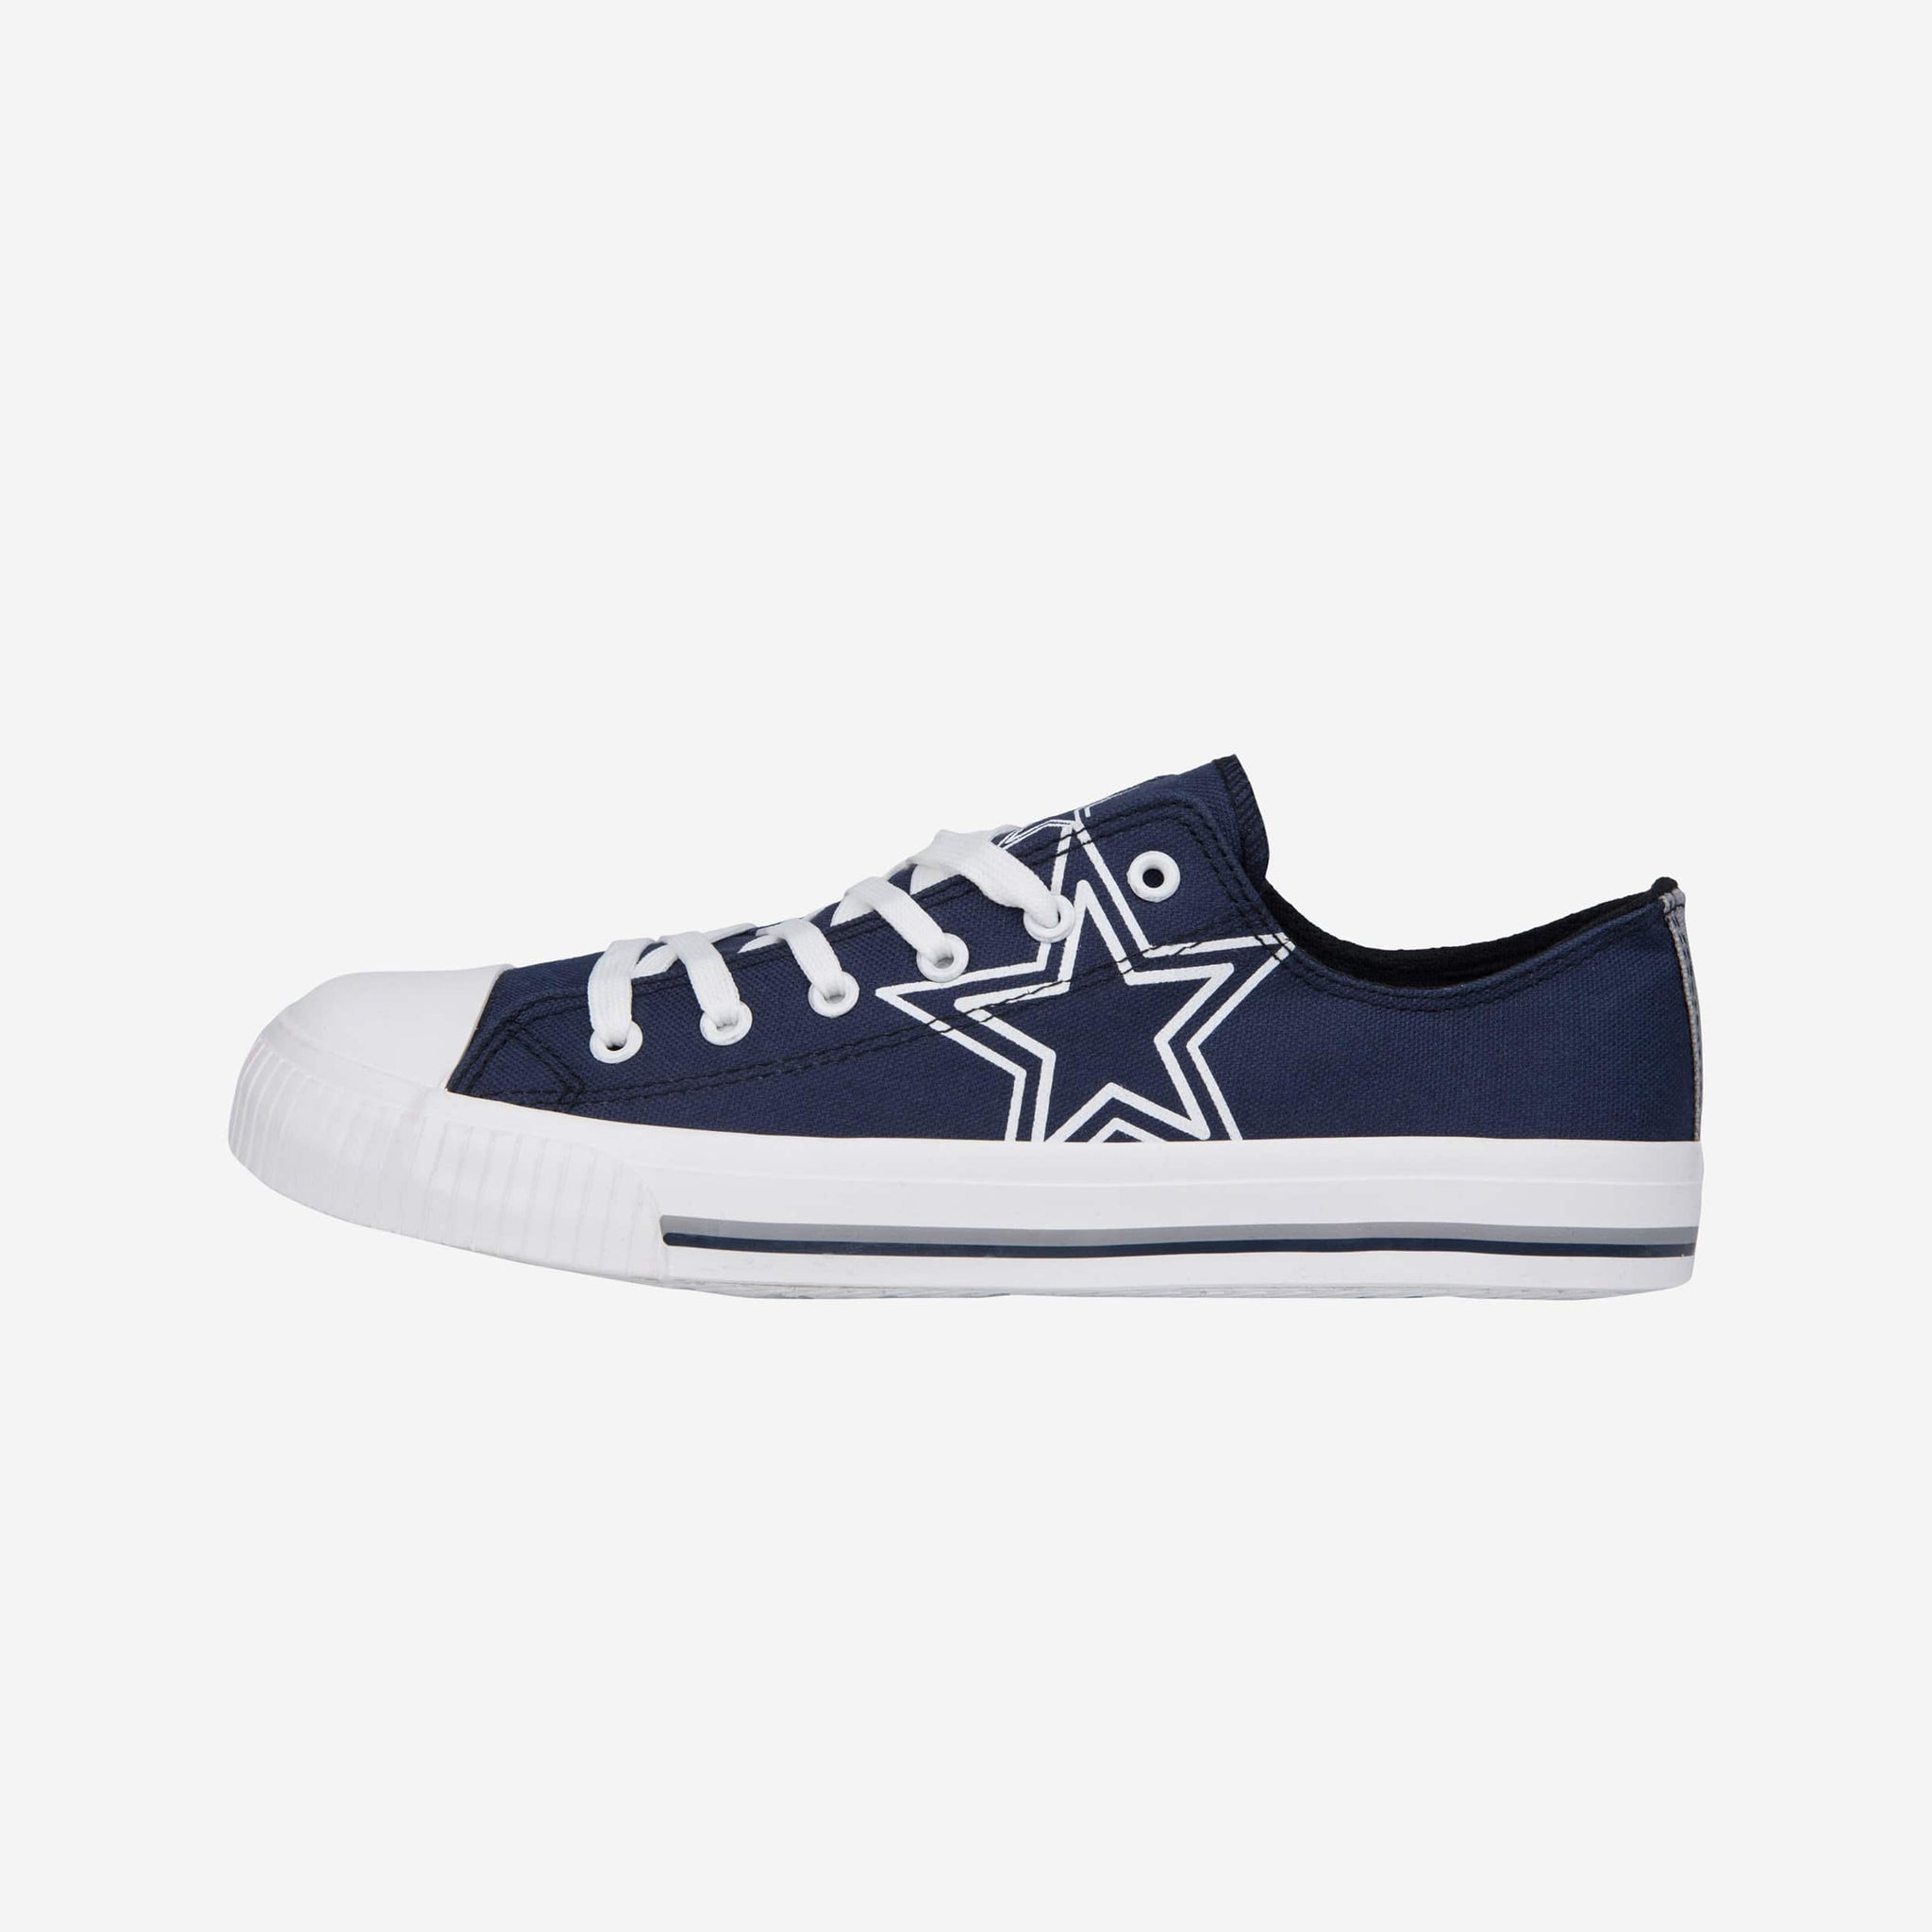 00b5b481653 Dallas Cowboys Mens Low Top Big Logo Canvas Shoe FOCO - FOCO.com